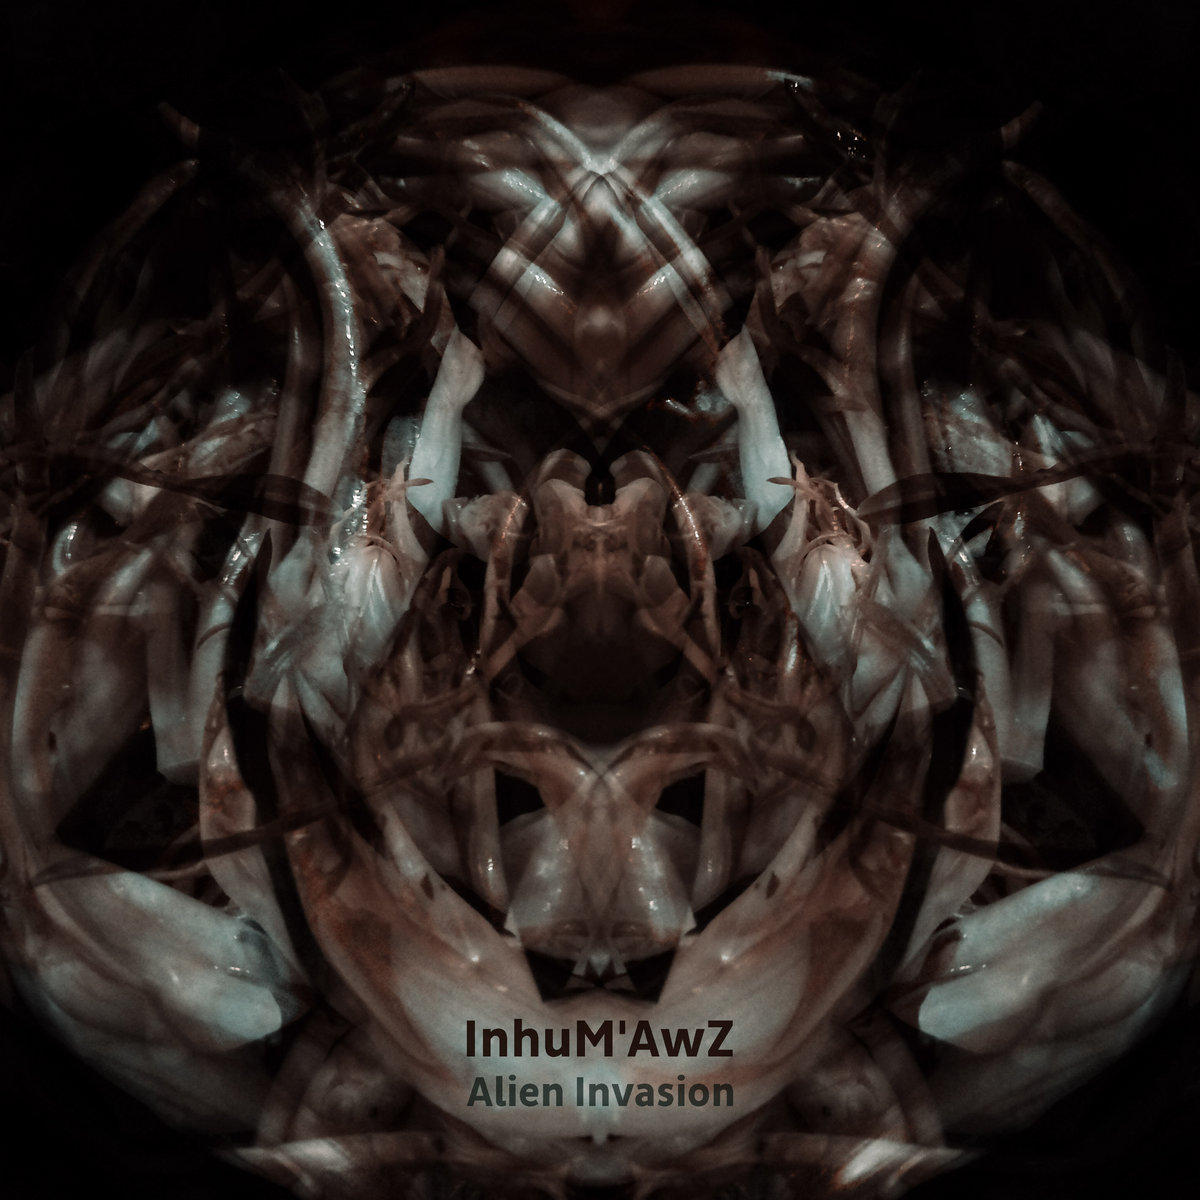 InhuM'AwZ – Alien Invasion